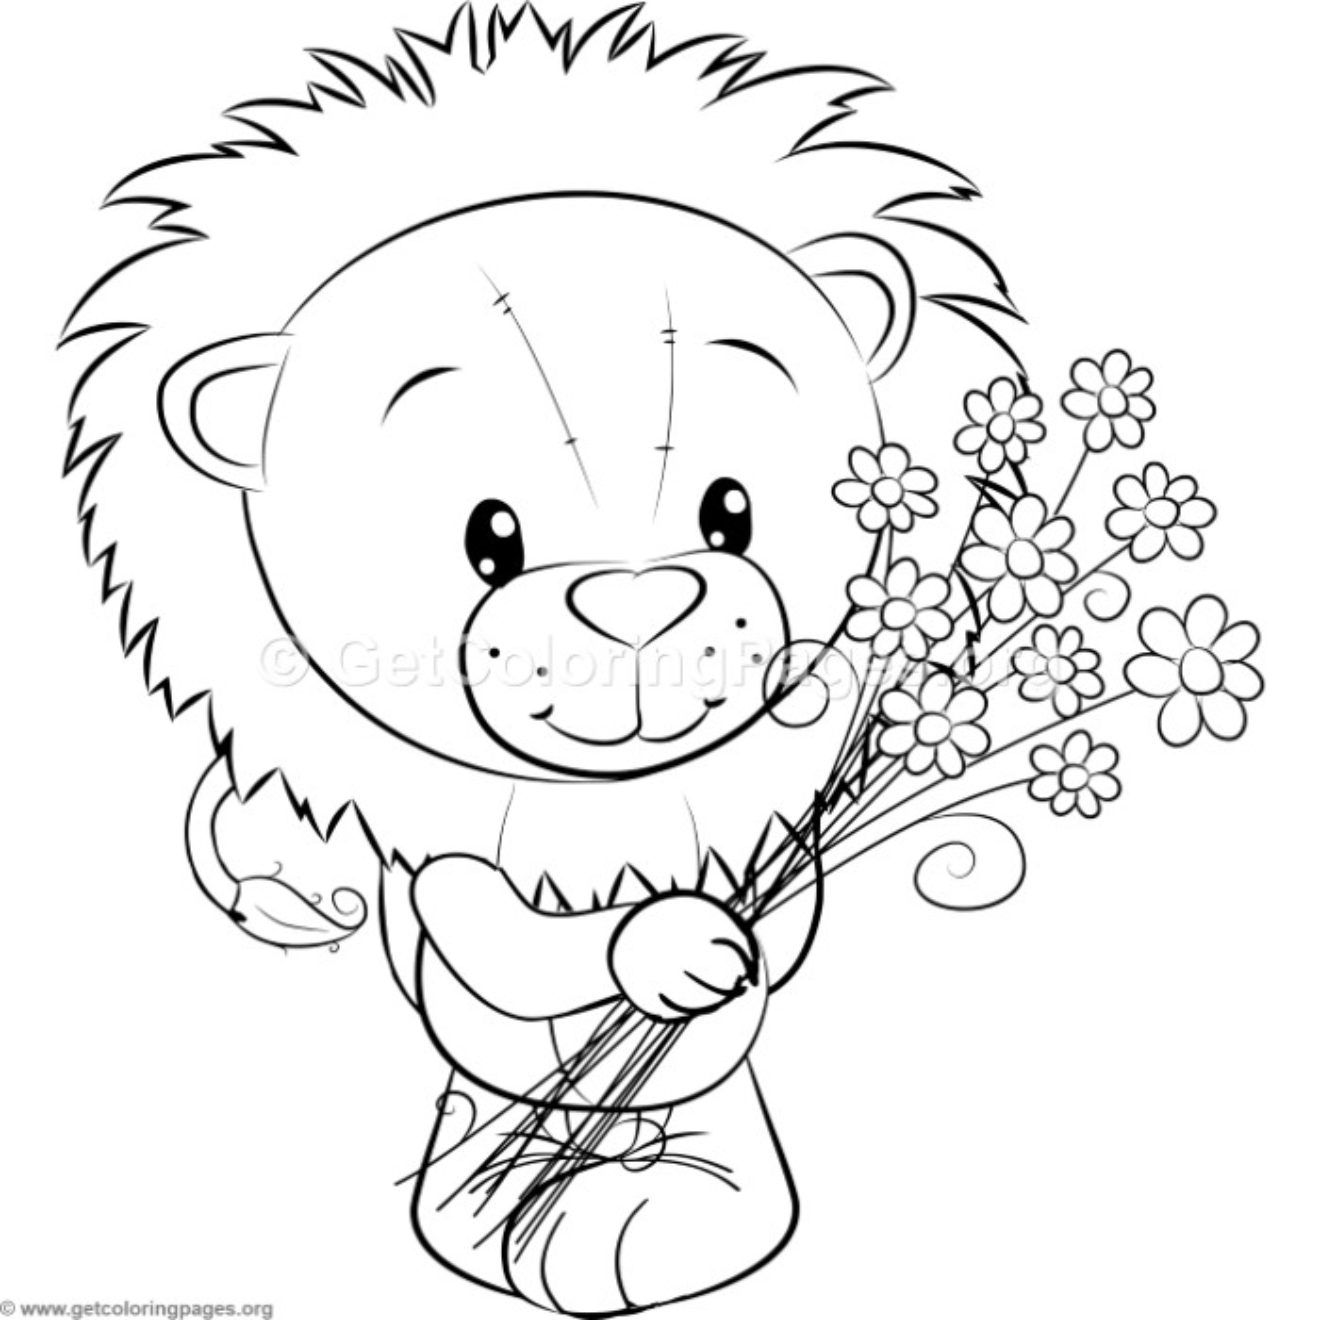 Little Lion 7 Coloring Pages Getcoloringpages Org Monkey Coloring Pages Cute Coloring Pages Coloring Pages